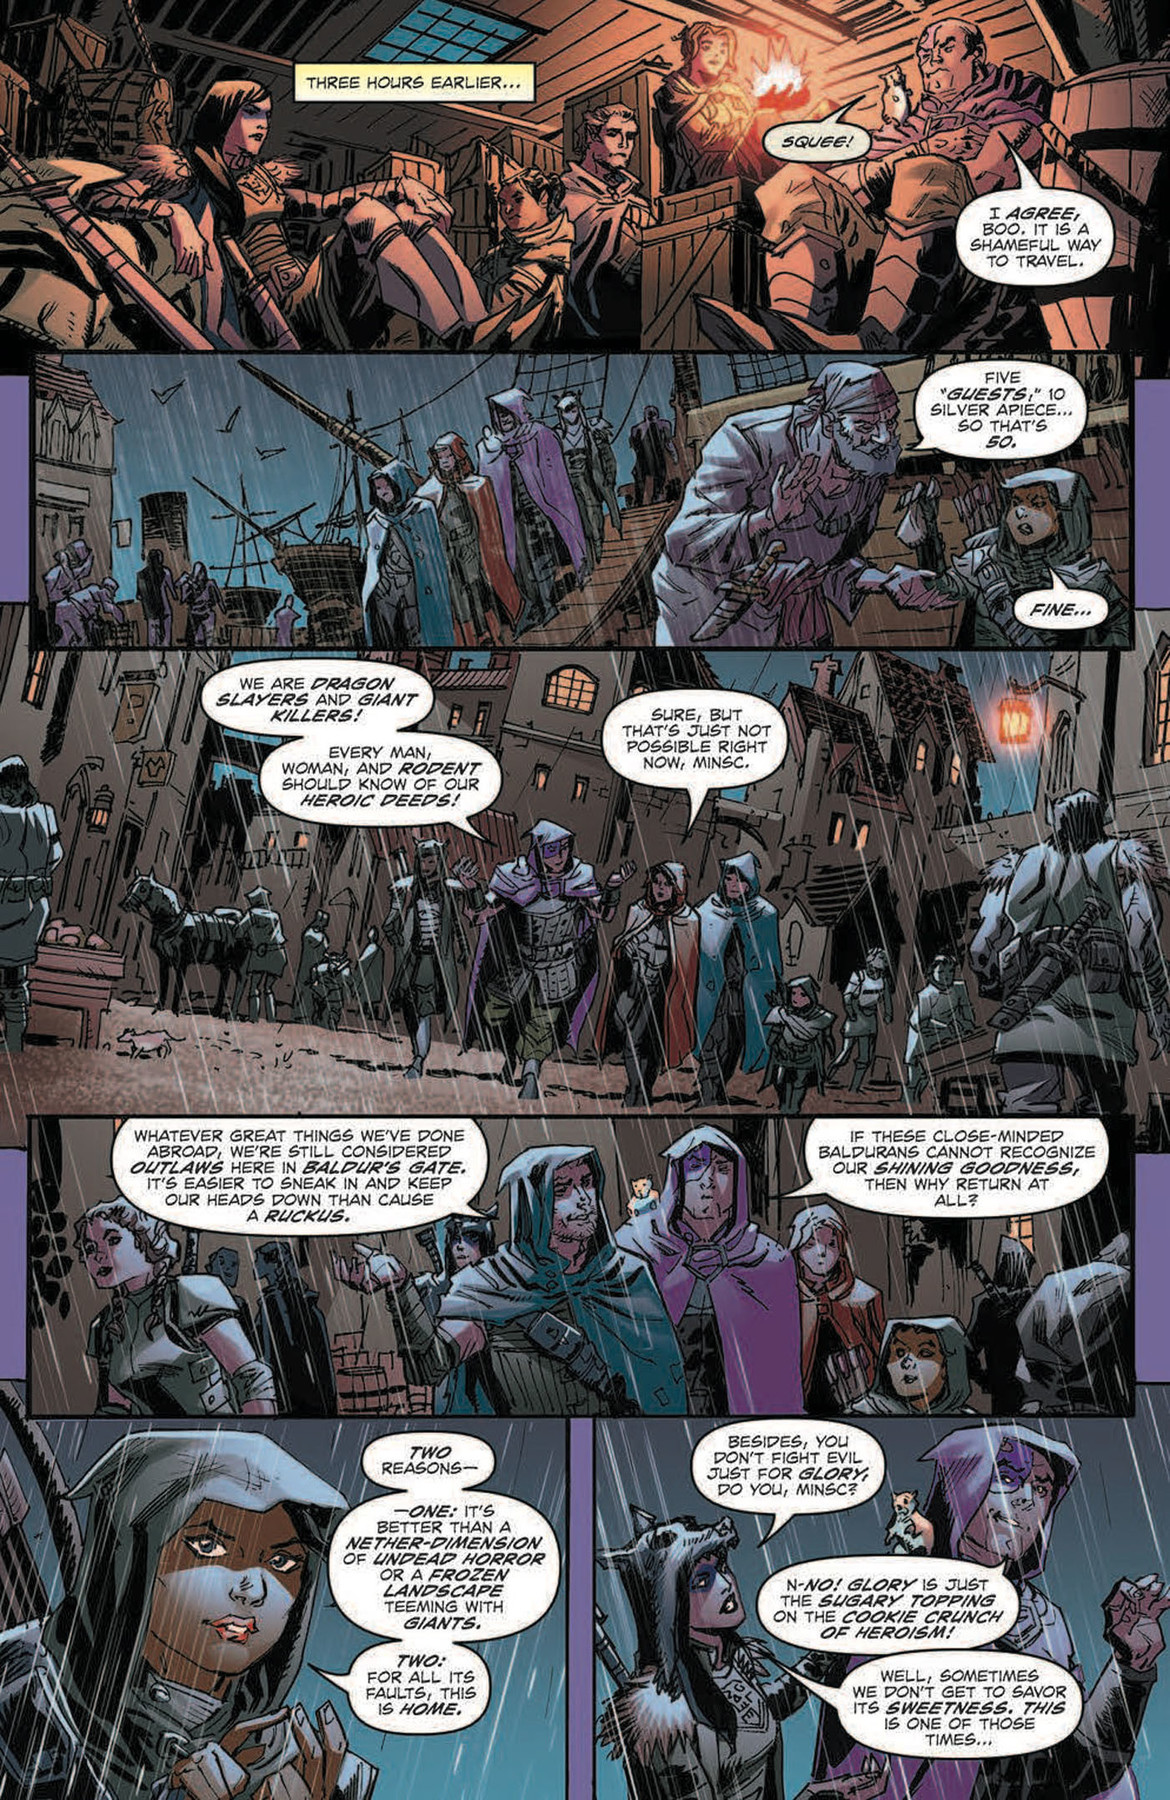 dungeons_and_dragons_evil_at_baldurs_gate_page_3.jpg